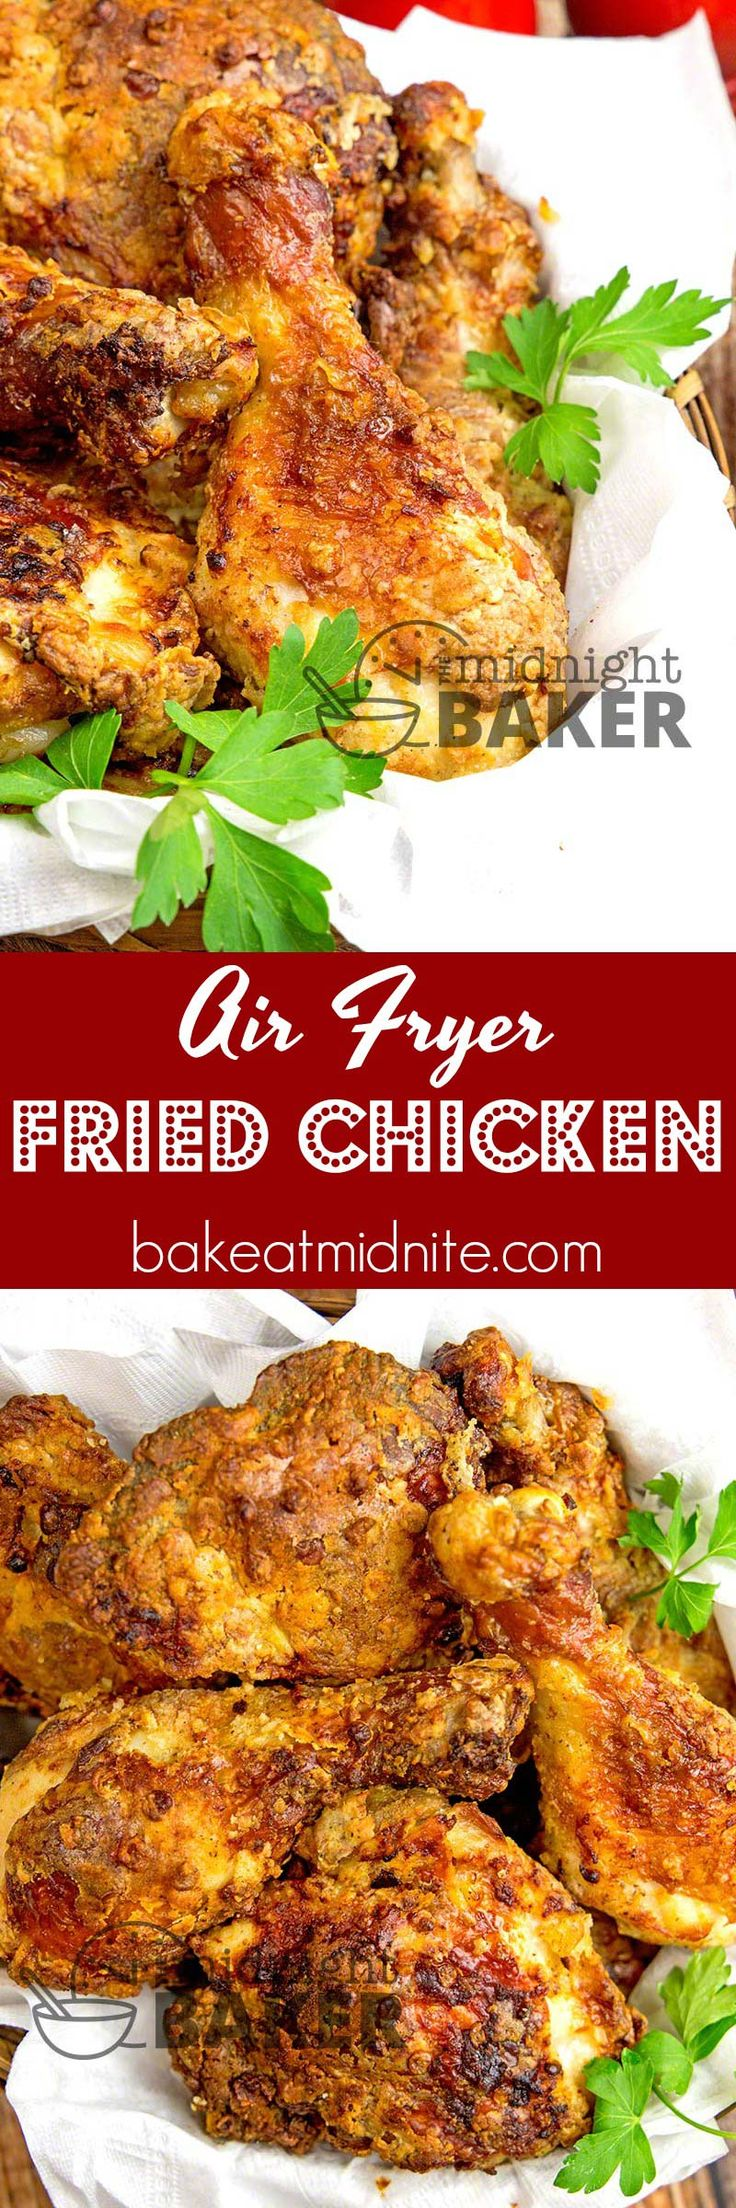 The crispiest fried chicken you'll ever eat. Hardly uses any fat using an air fryer.#chicken #airfryer #lowfat #healthy